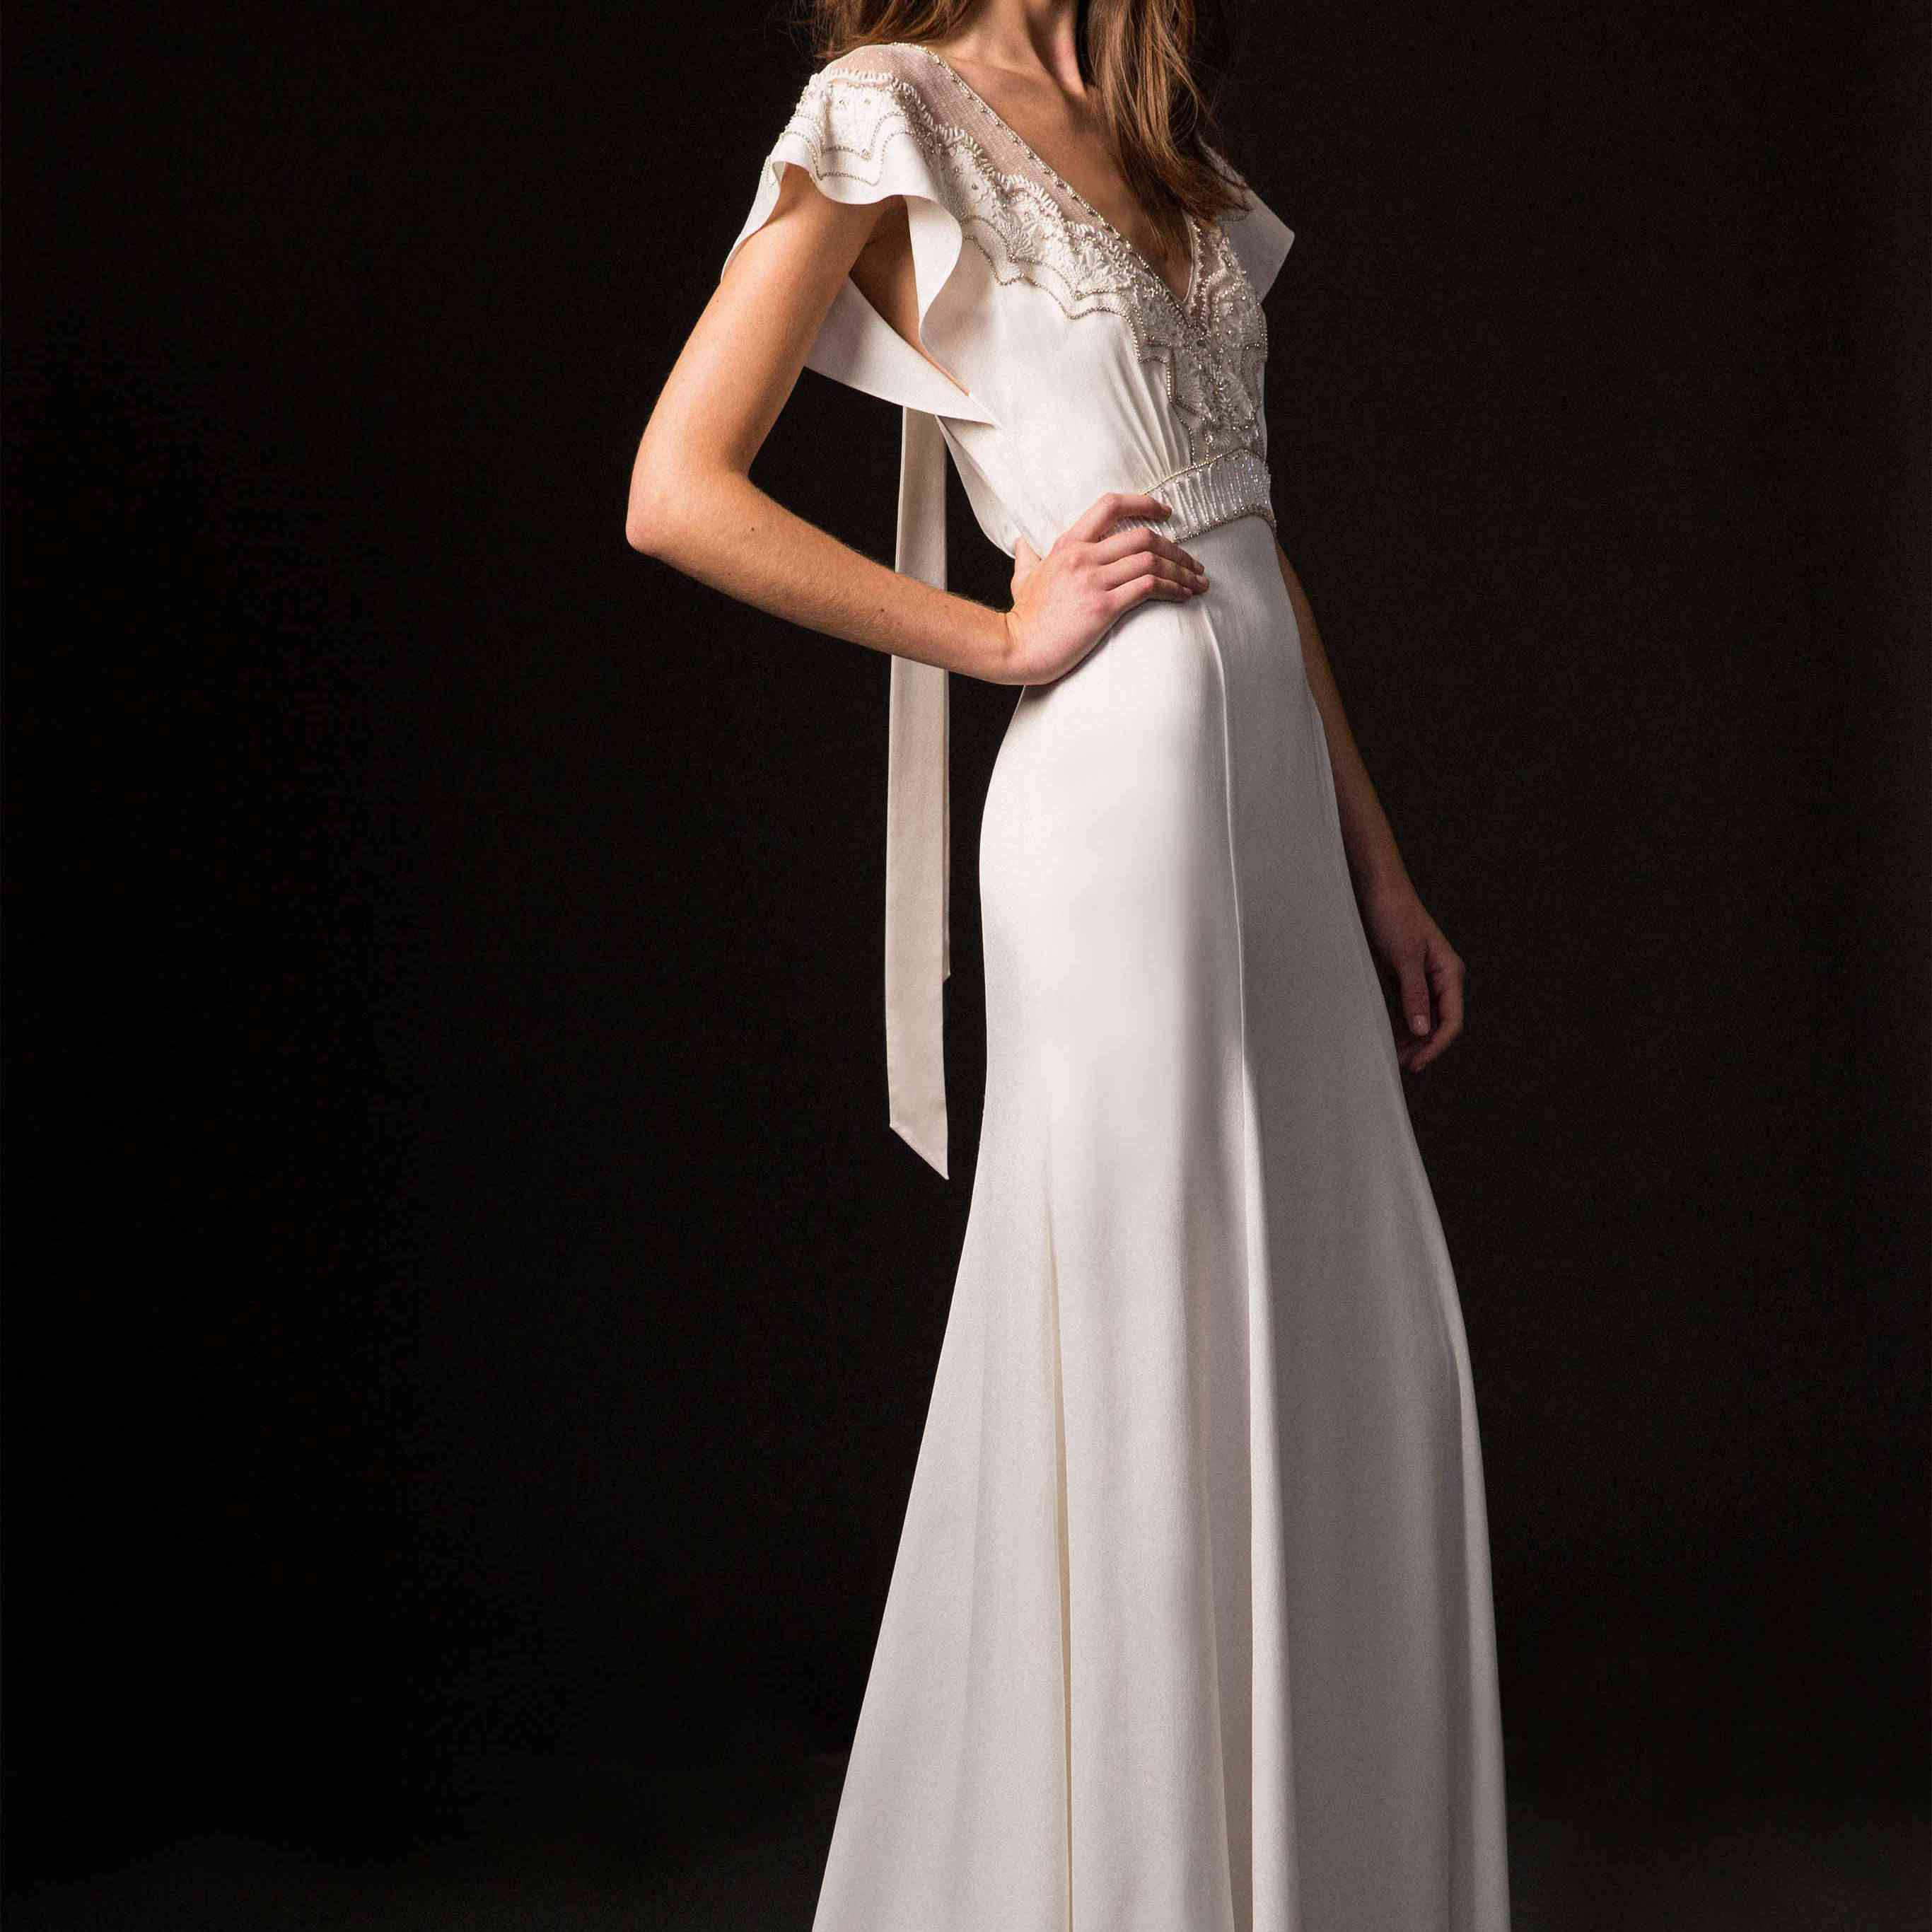 Model in satin sheath dress with beaded detail on the bodice and flutter sleeves